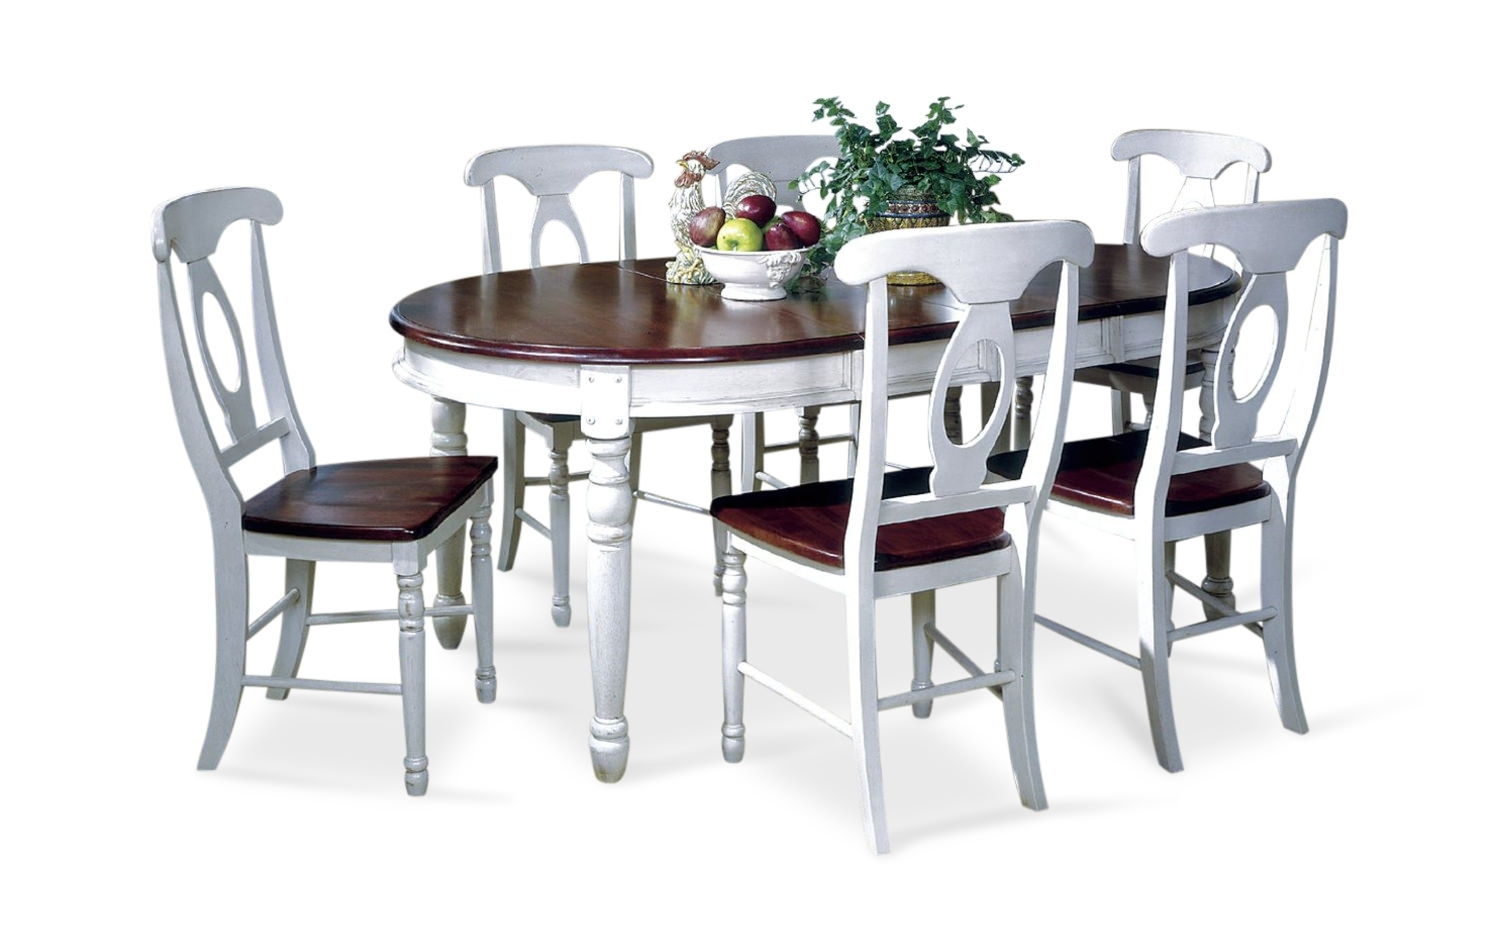 Dining Sets – Kitchen & Dining Room Sets – Hom Furniture Intended For Most Up To Date Chapleau Ii 7 Piece Extension Dining Table Sets (Image 12 of 20)